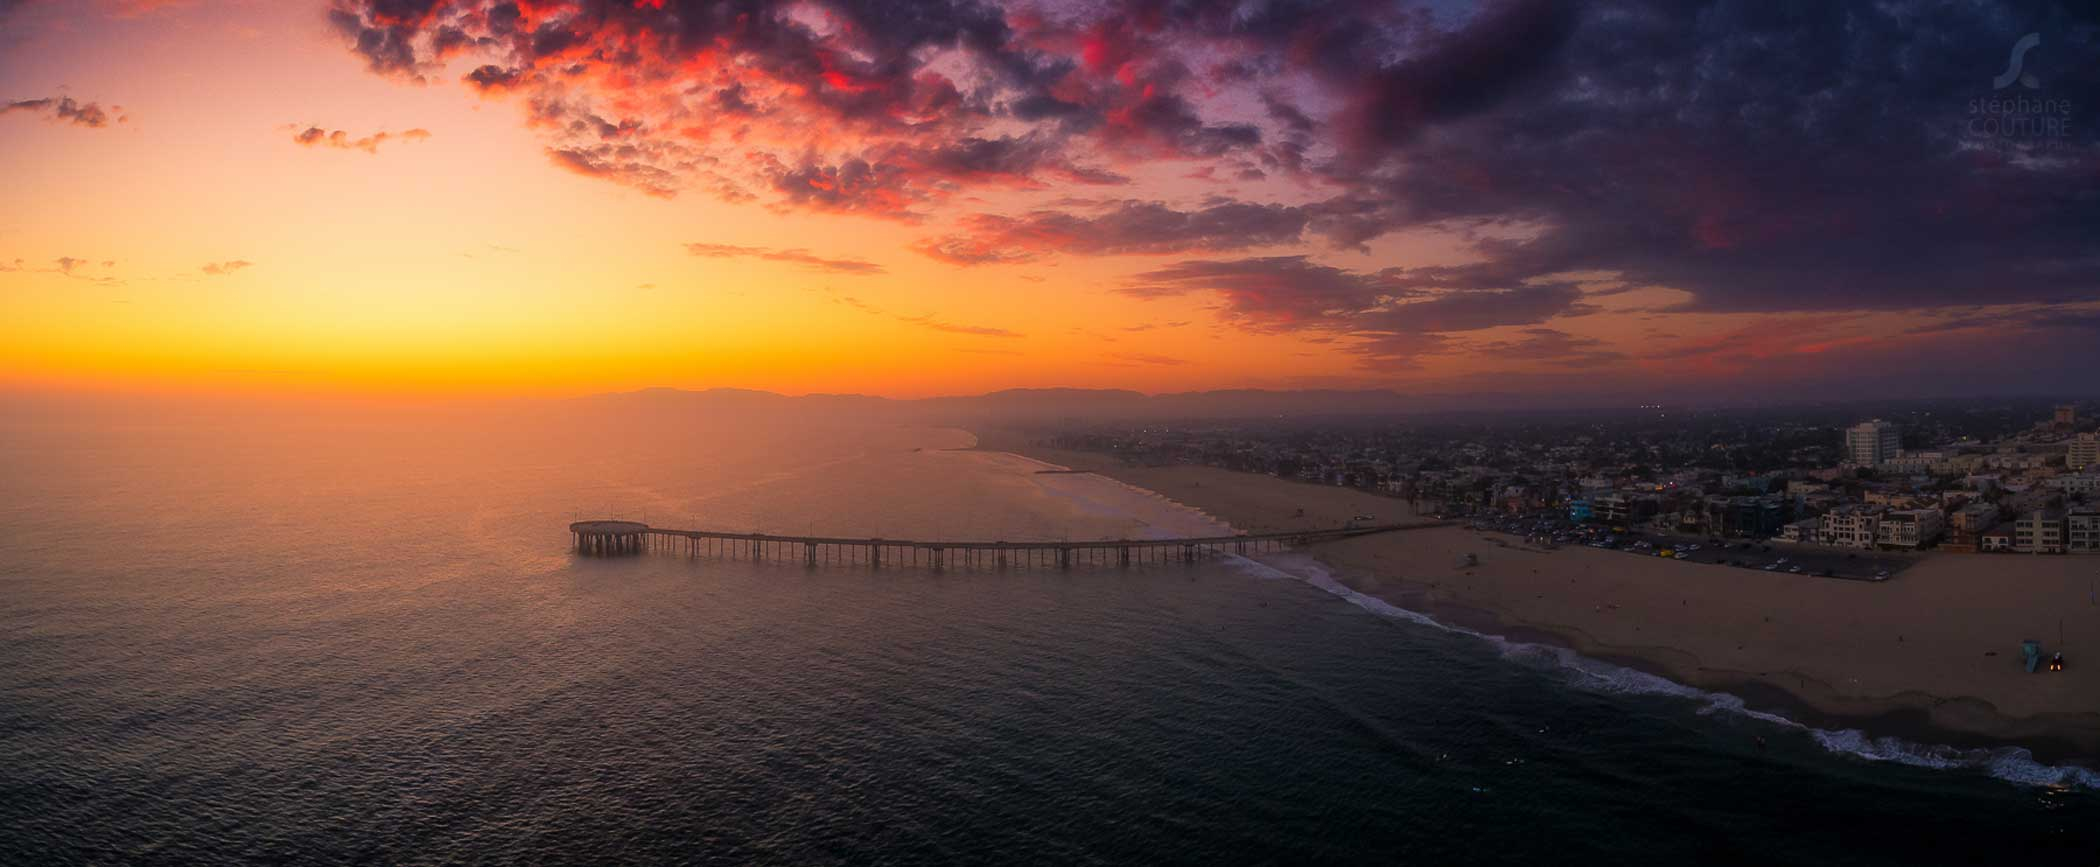 Sunset over Venice Pier in Los Angeles.